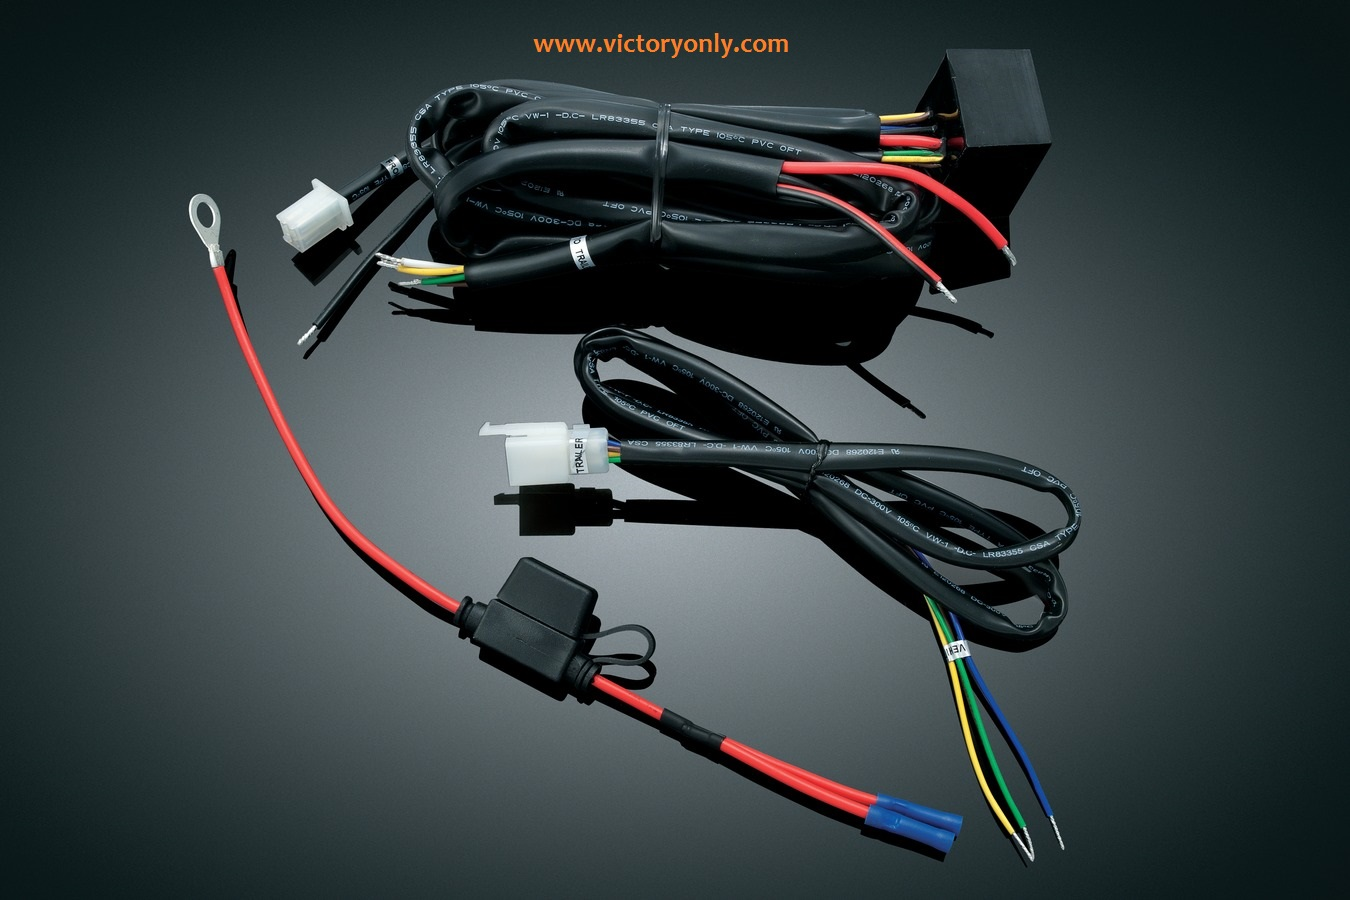 16997_kur_7671_tt_u_13_1350x900_RGB_72DPI trailer wiring harnesses for victory motorcycle Universal Wiring Harness Diagram at readyjetset.co